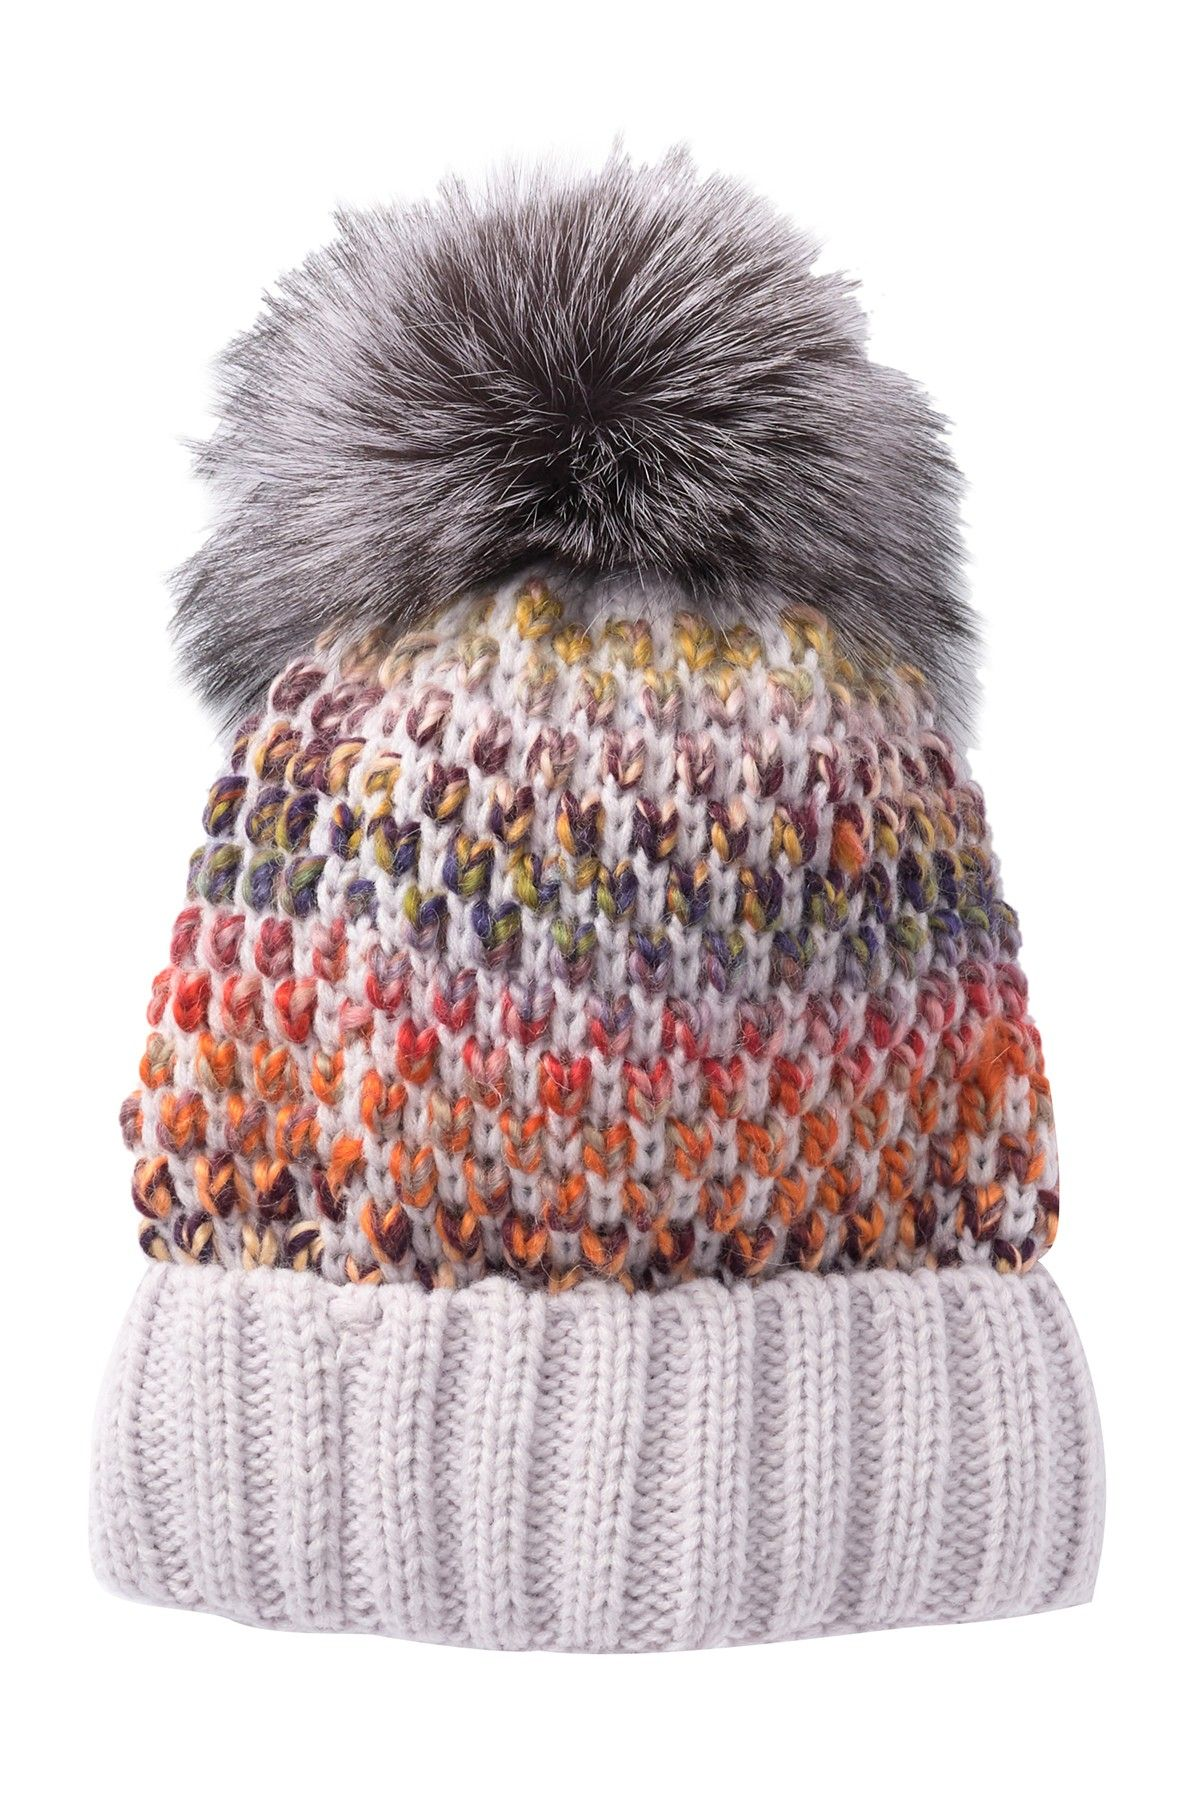 95d0c17671d Genuine Fox Fur Pompom Multi Knit Beanie by Kyi Kyi on  nordstrom rack